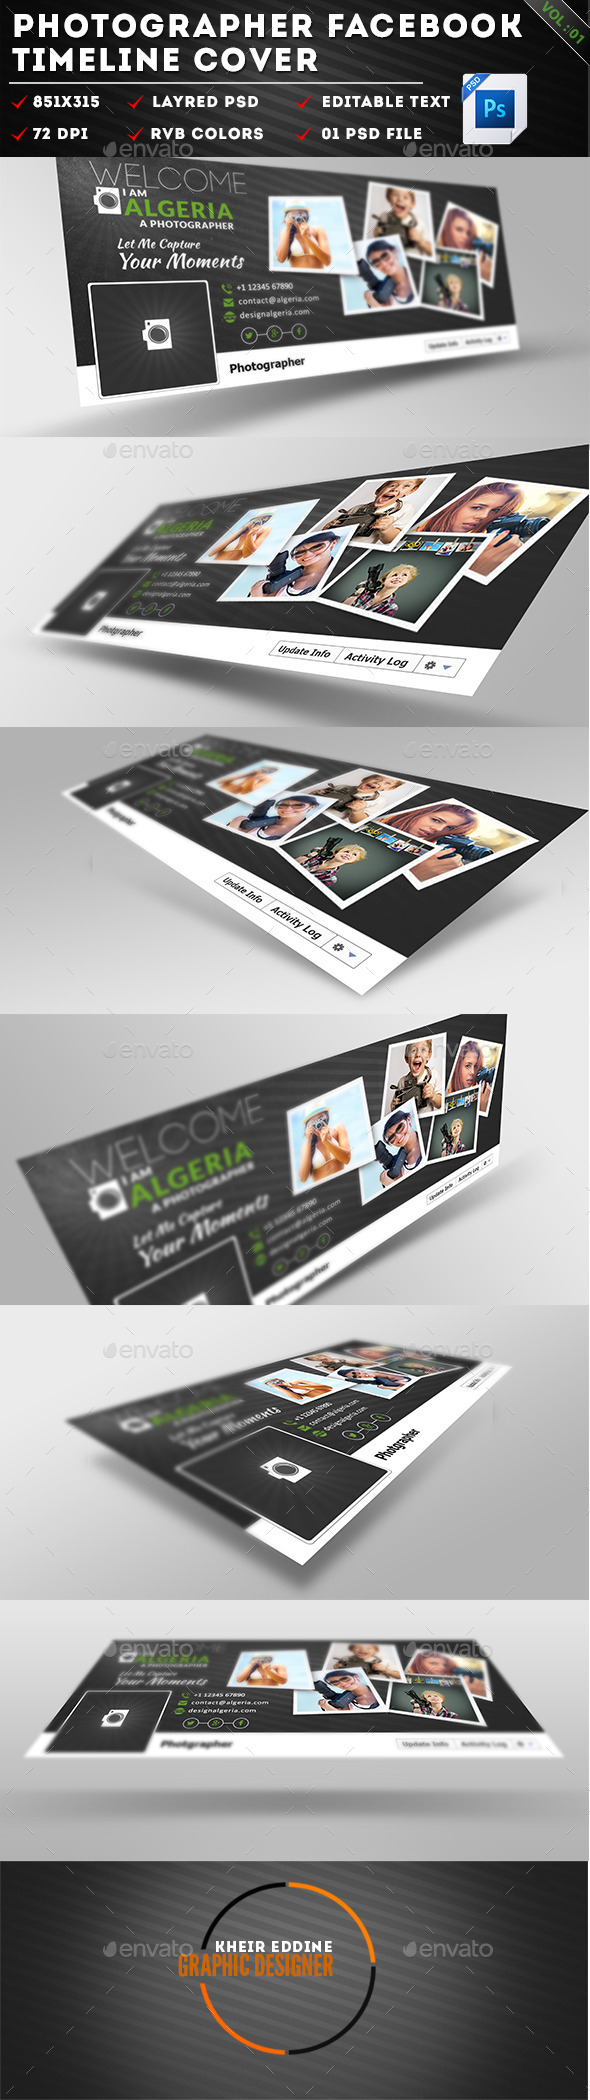 GraphicRiver Photographers Facebook Timeline Cover Vol01 11453590